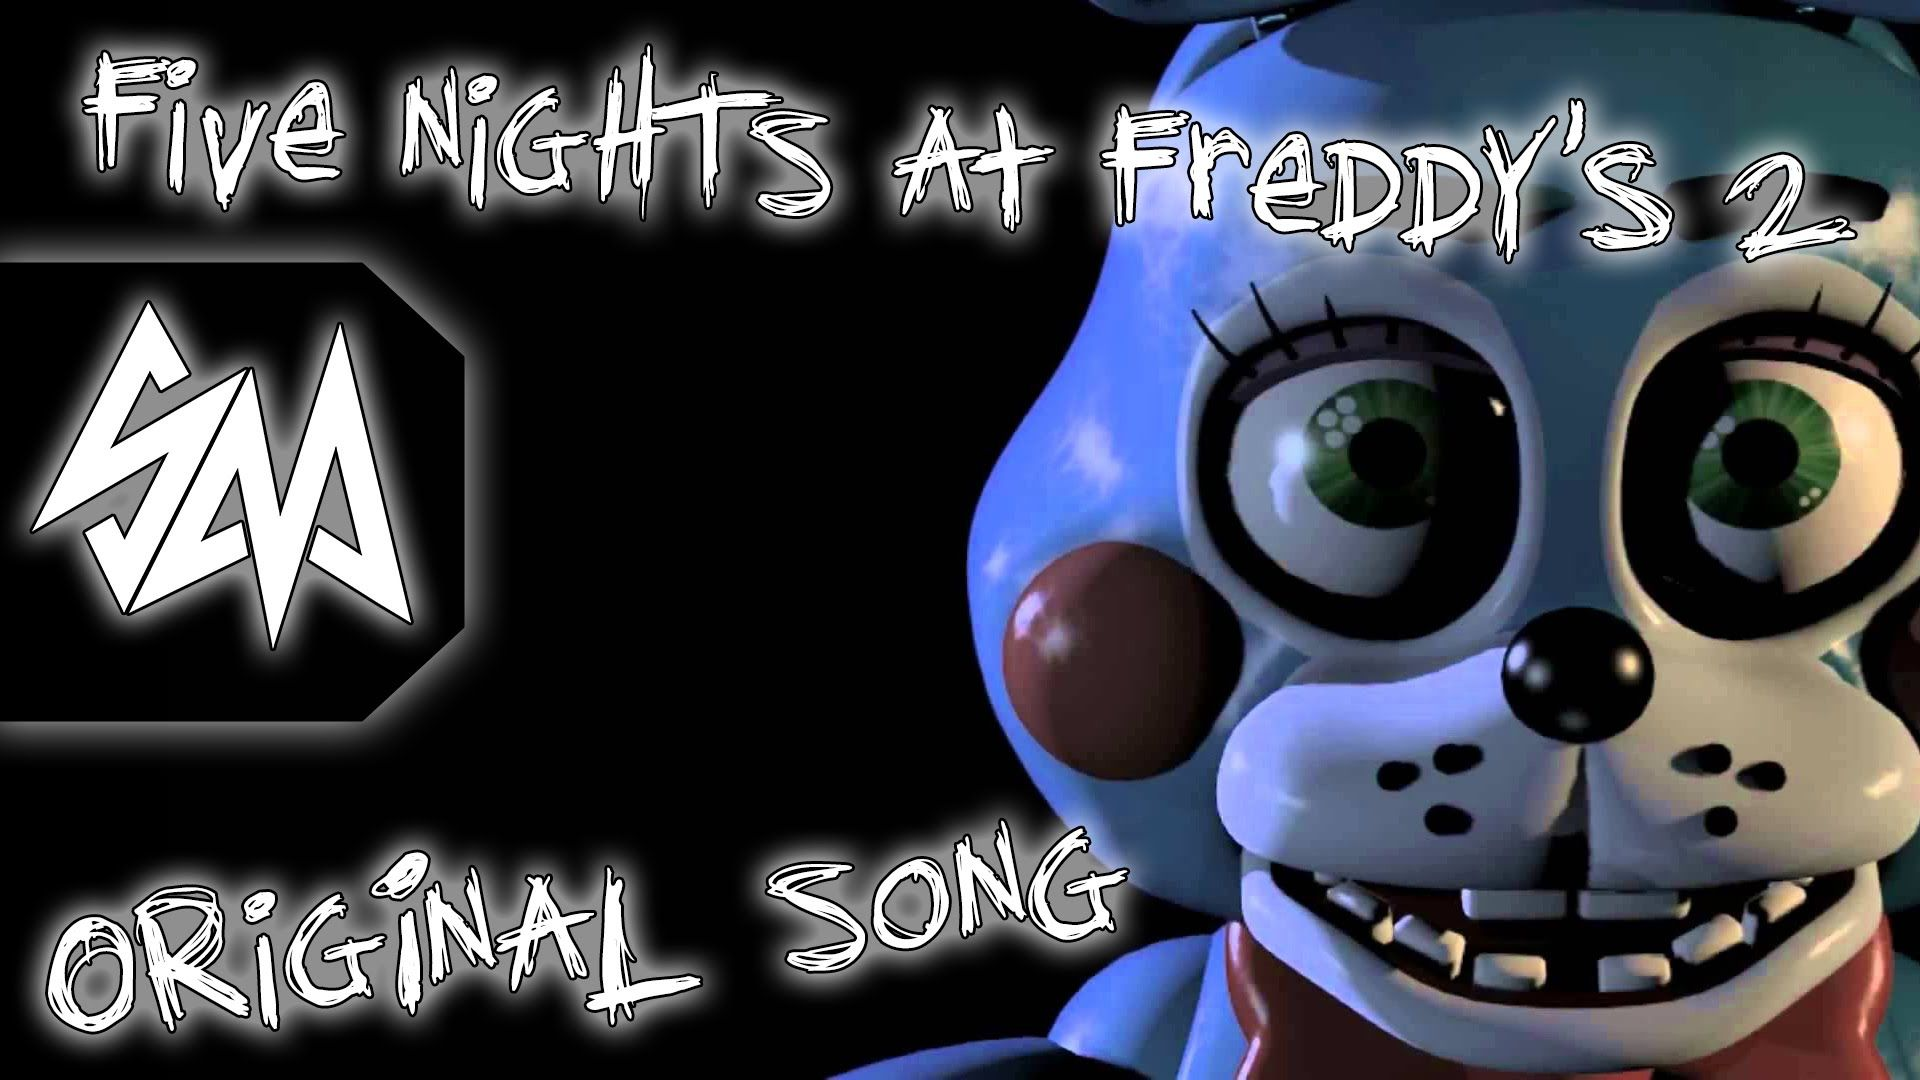 http://investservicesmali.com/teo/follow-me-fnaf-song.html